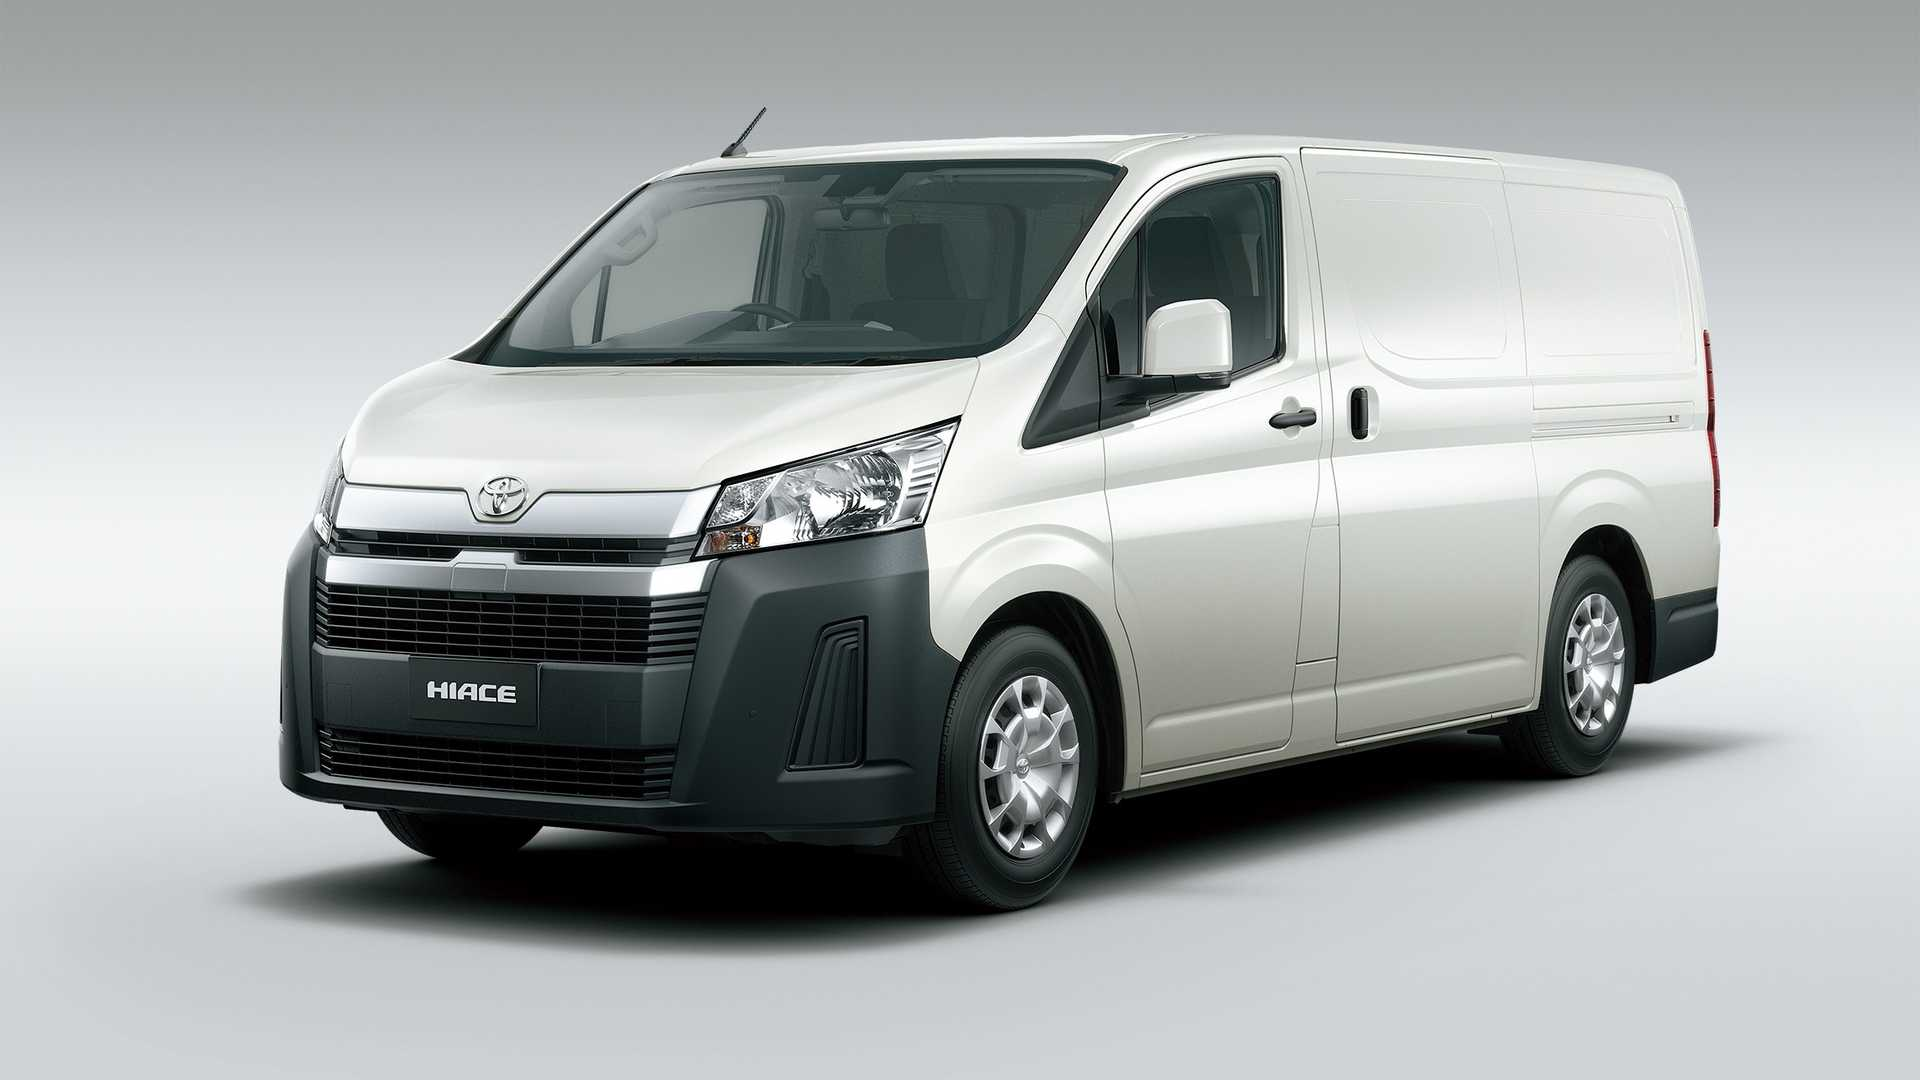 61 All New Toyota Hiace 2019 New Concept by Toyota Hiace 2019